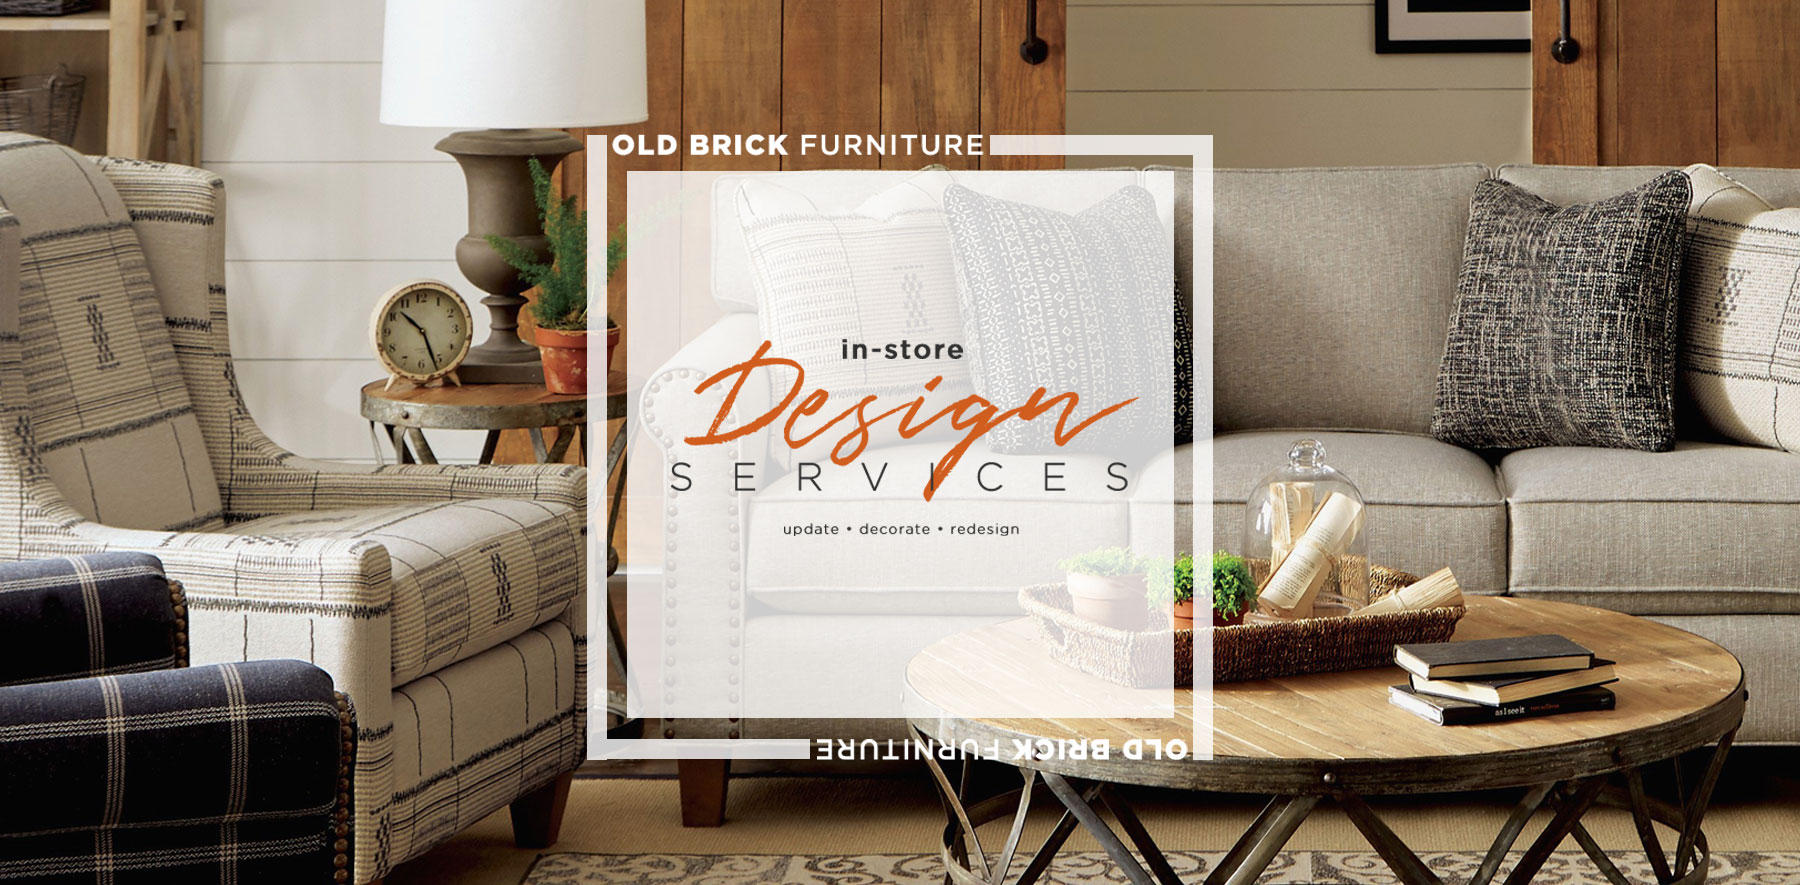 The Old Brick Furniture Company